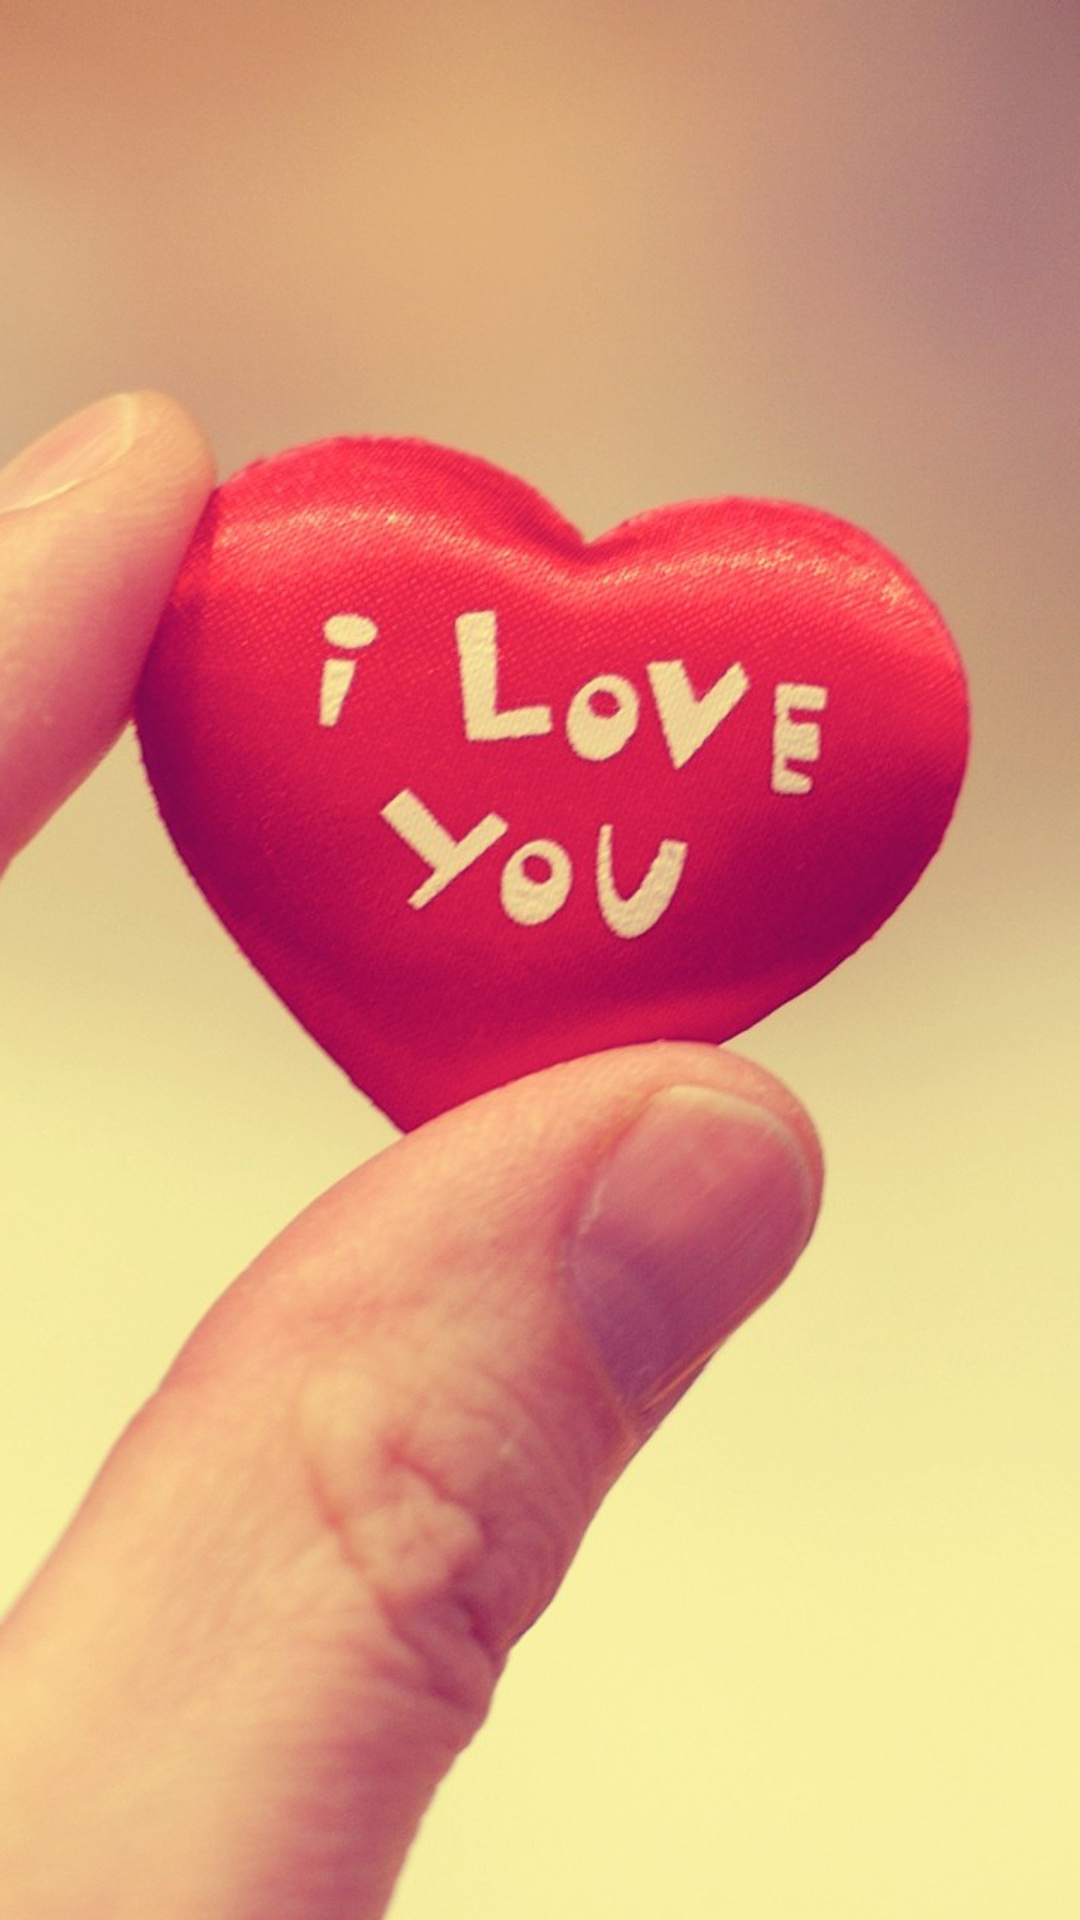 Wallpaper I Love You Heart : cute I Love You Heart